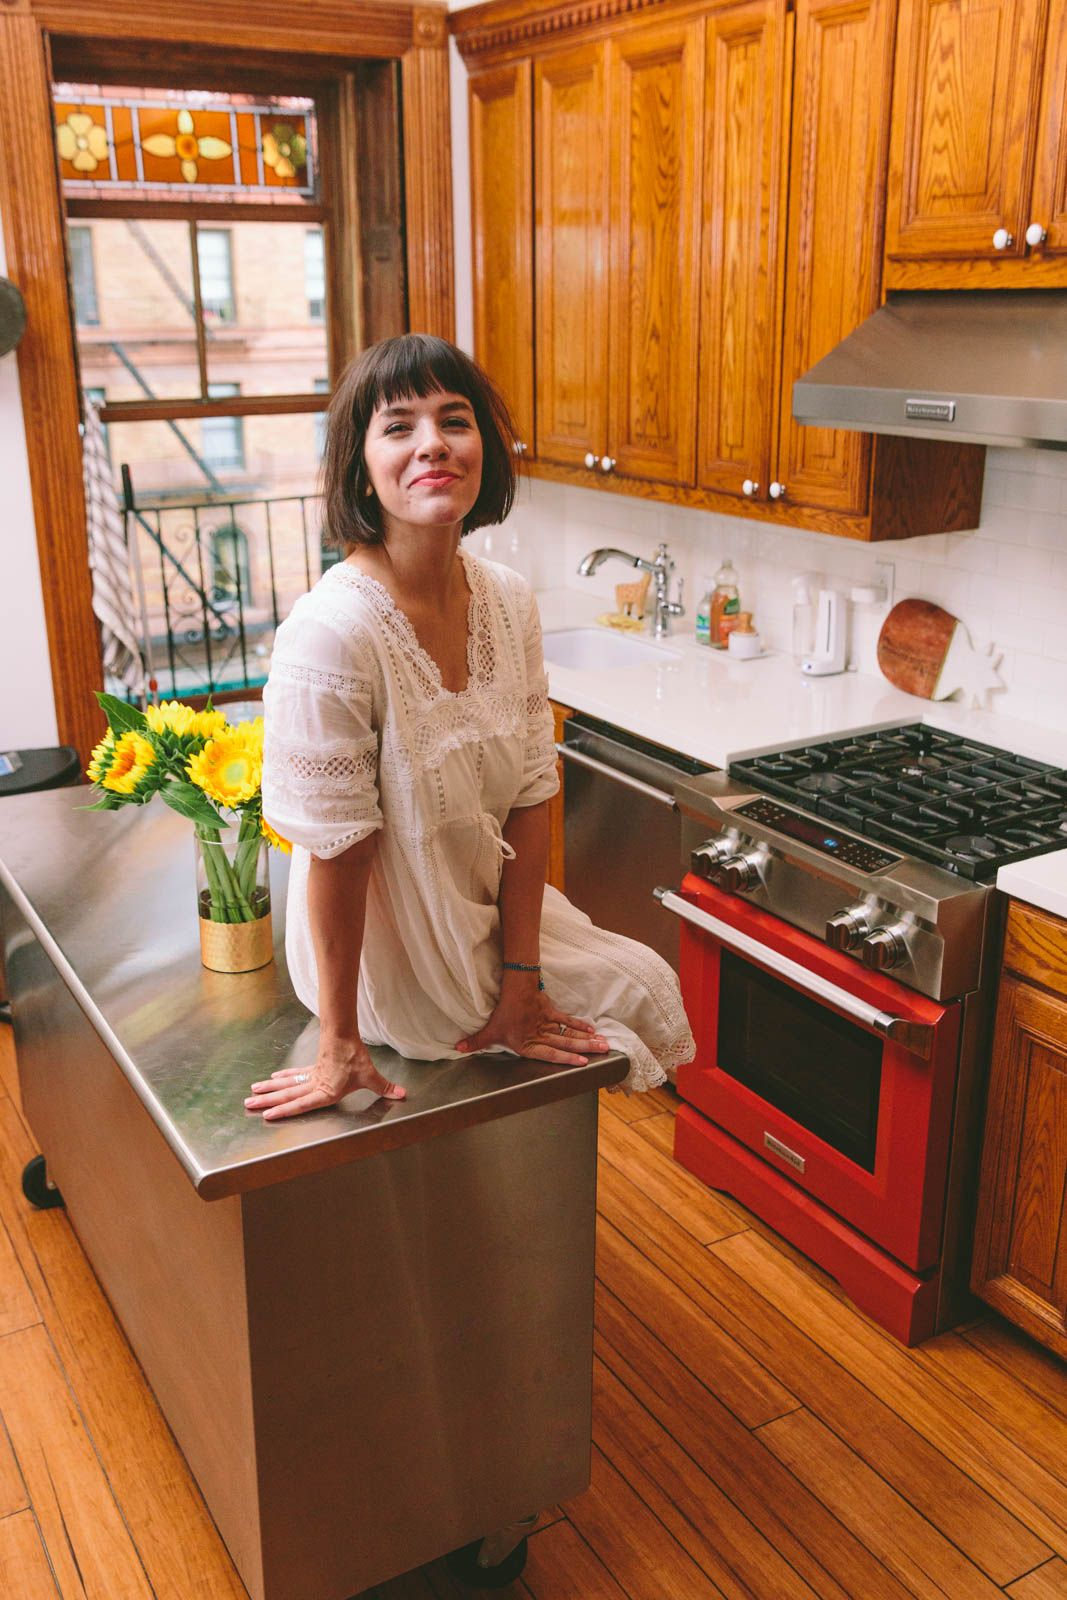 Pin By Aaron Miller On New York City Apartment New York City Apartment City Apartment Apartment Kitchen